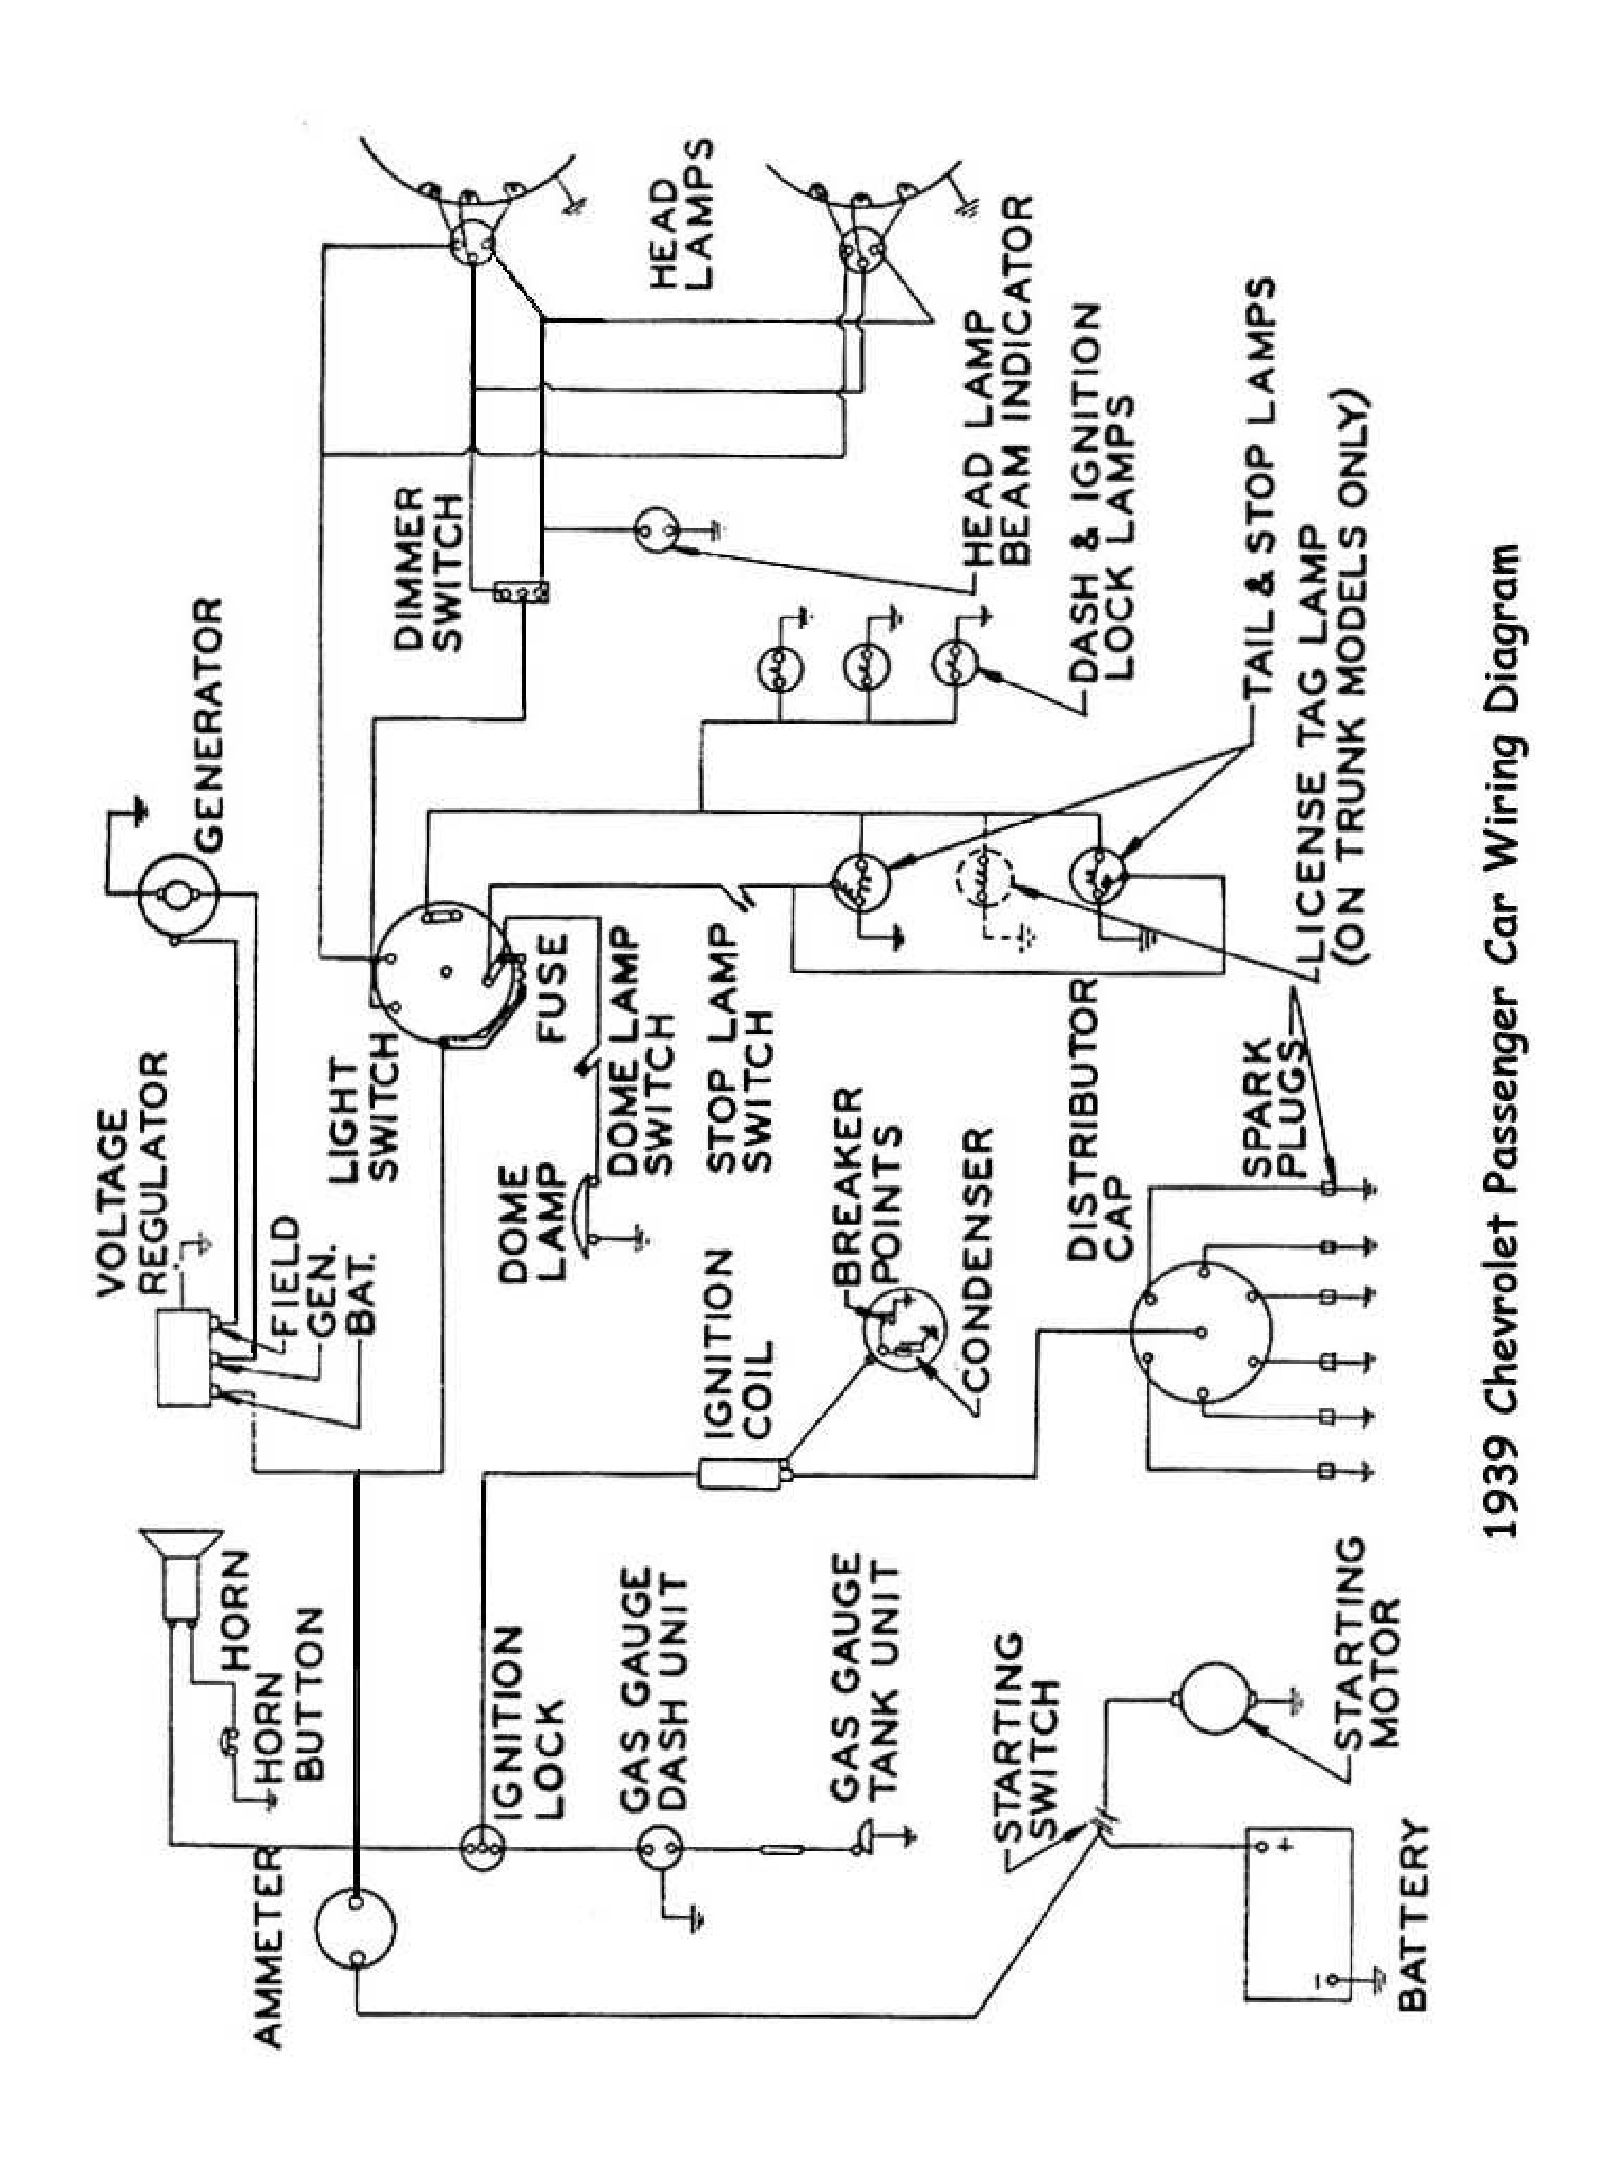 Air Conditioning Wiring Diagram Further 1956 Chevy Dash Basic Handler Truck 1948 Car